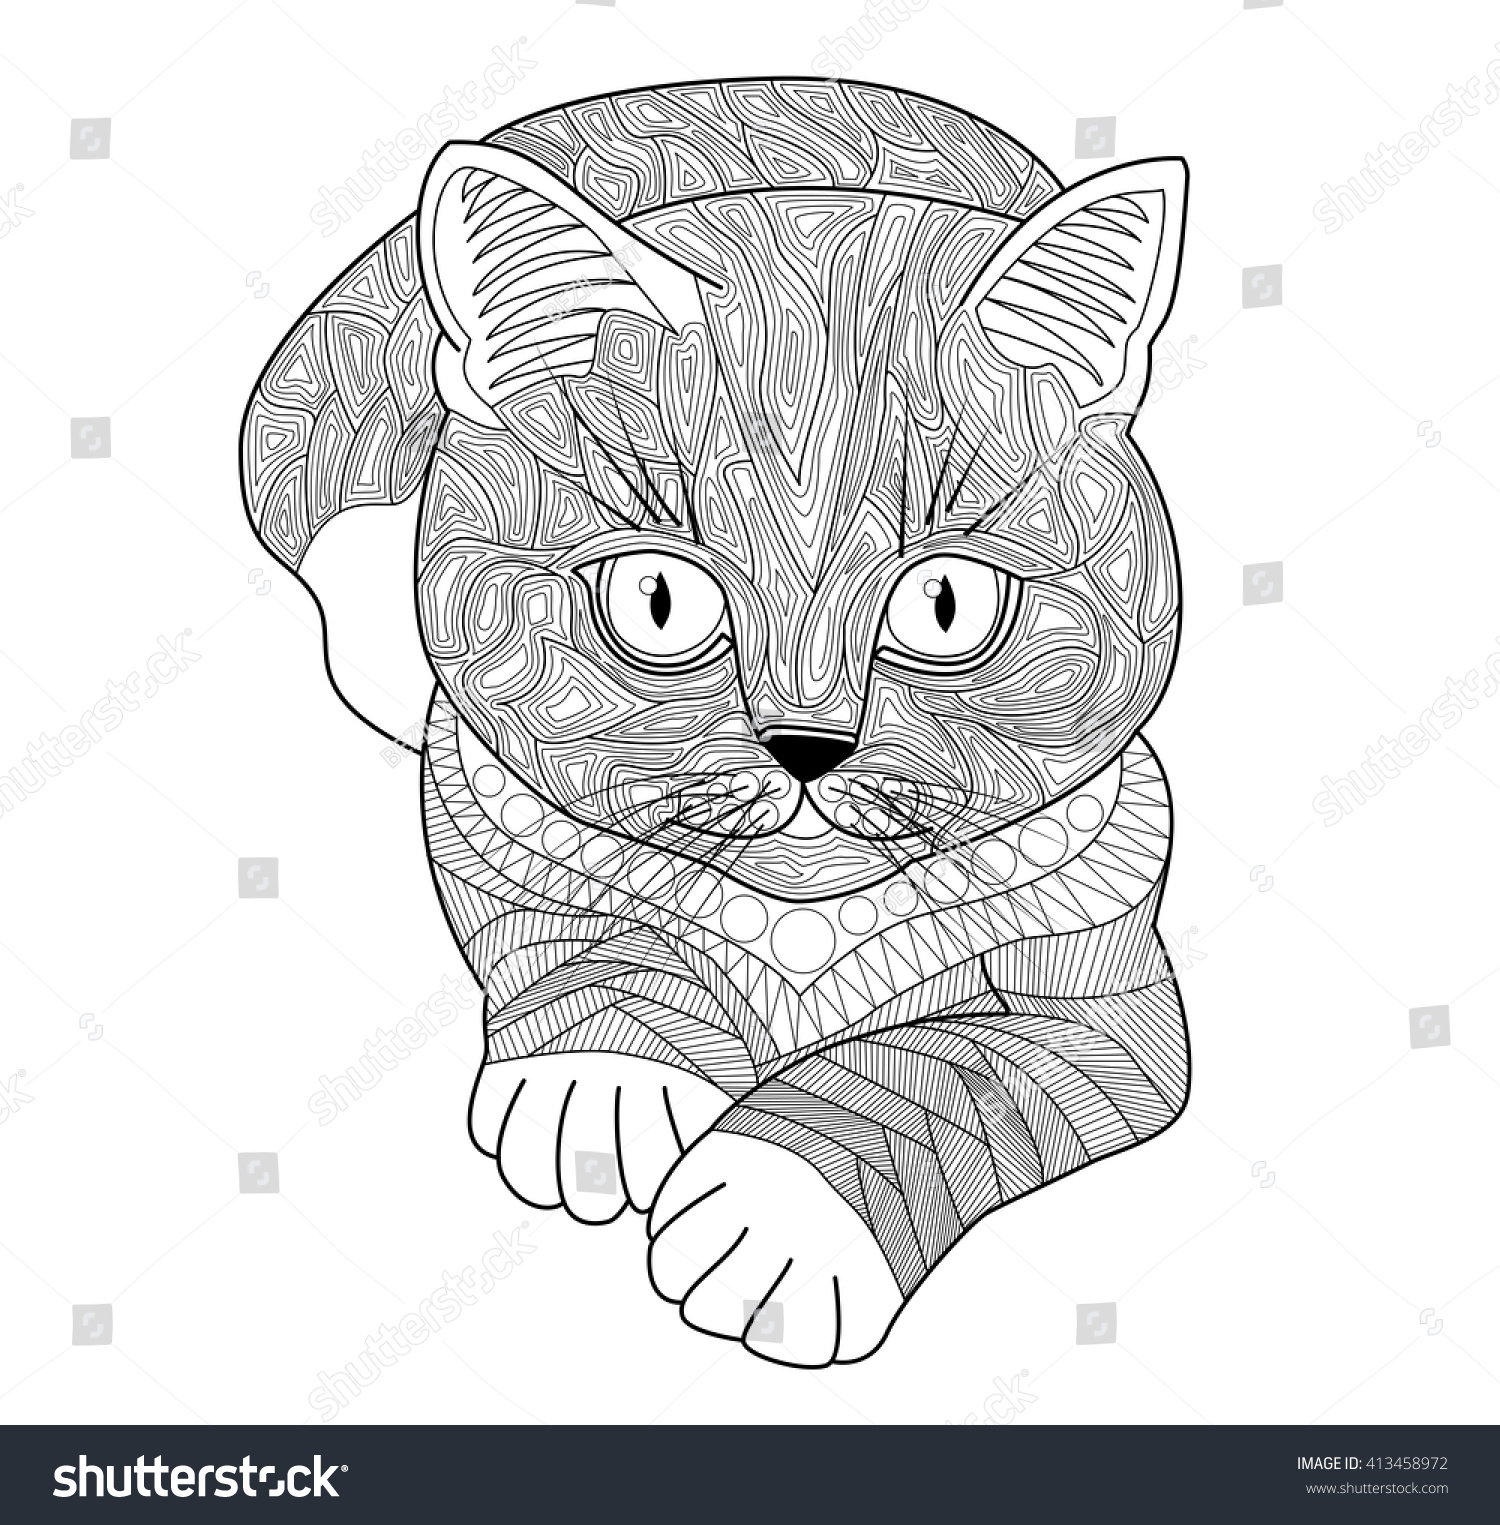 Coloring Pages For AdultsHand Drawn Cat With Stripes And Spots Scribbles Zentangle